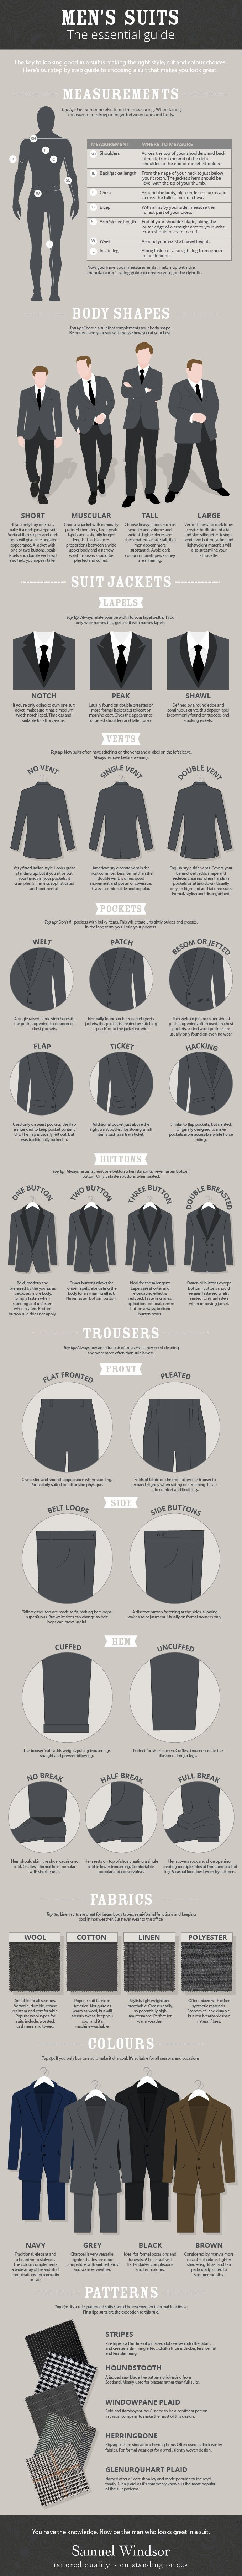 Infographic: The Essential Guide To Men's Suits - http://DesignTAXI.com